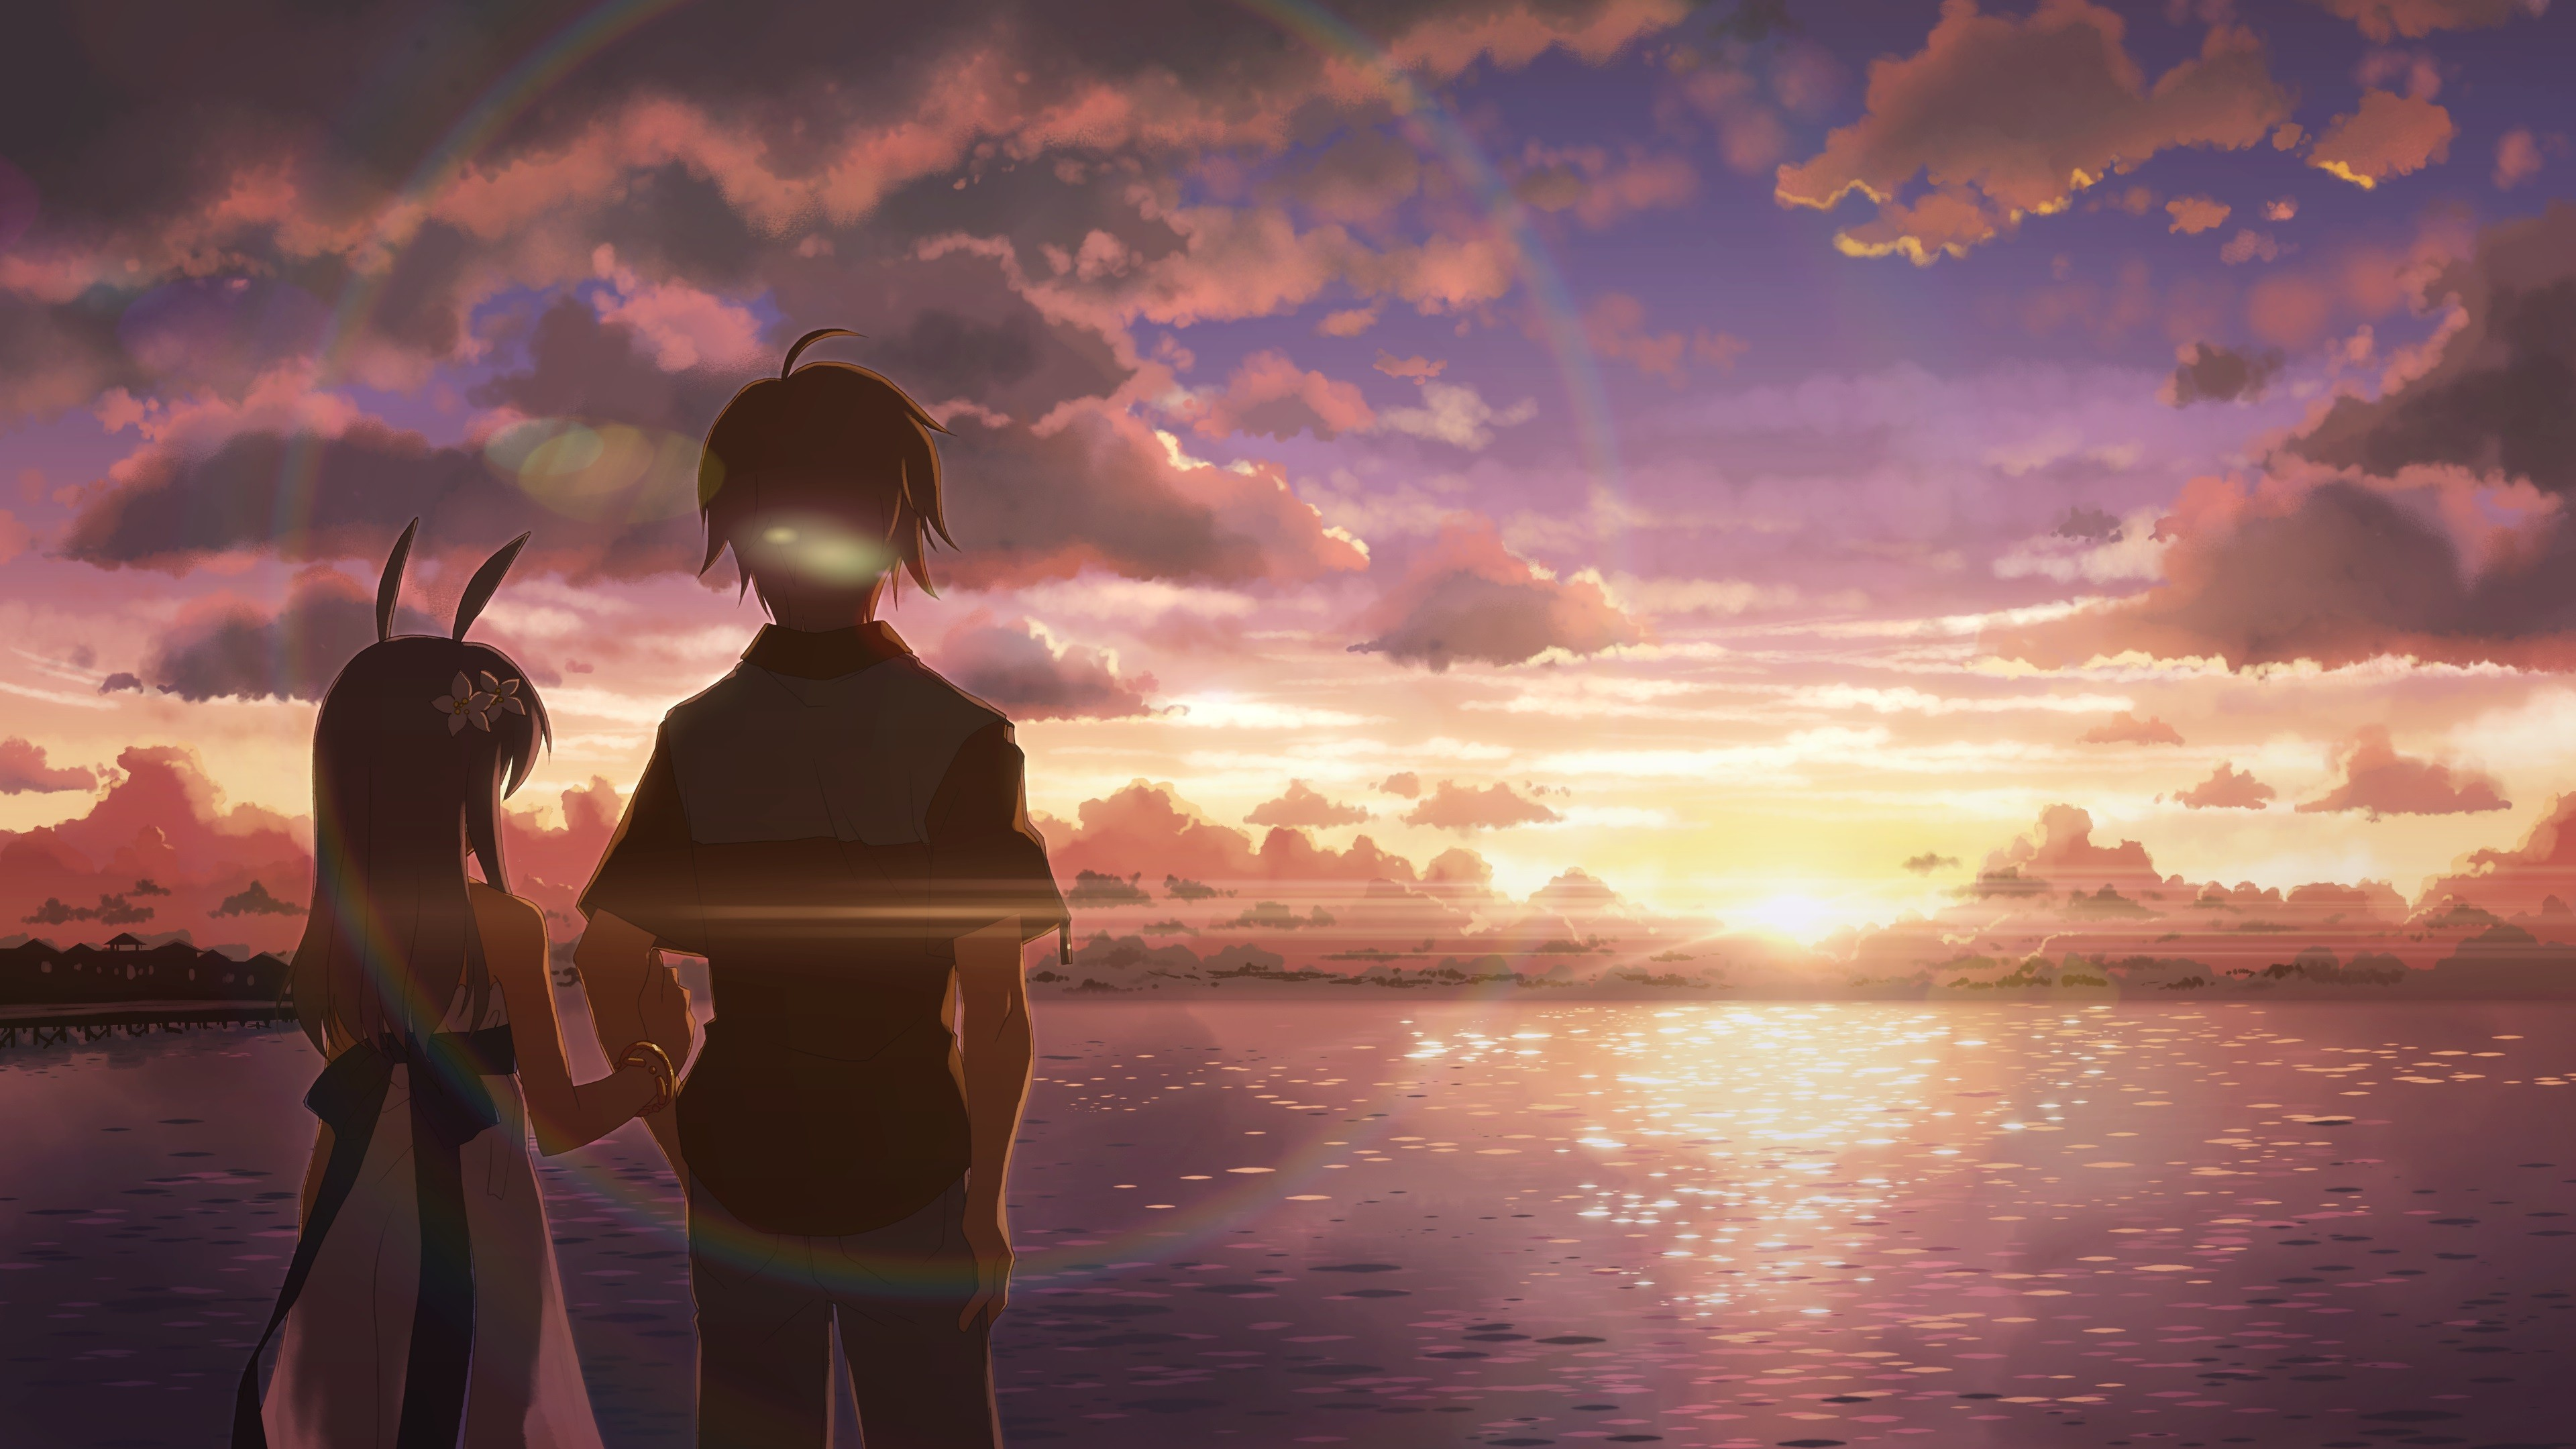 Anime Boy And Girl Alone Hd Anime 4k Wallpapers Images Backgrounds Photos And Pictures